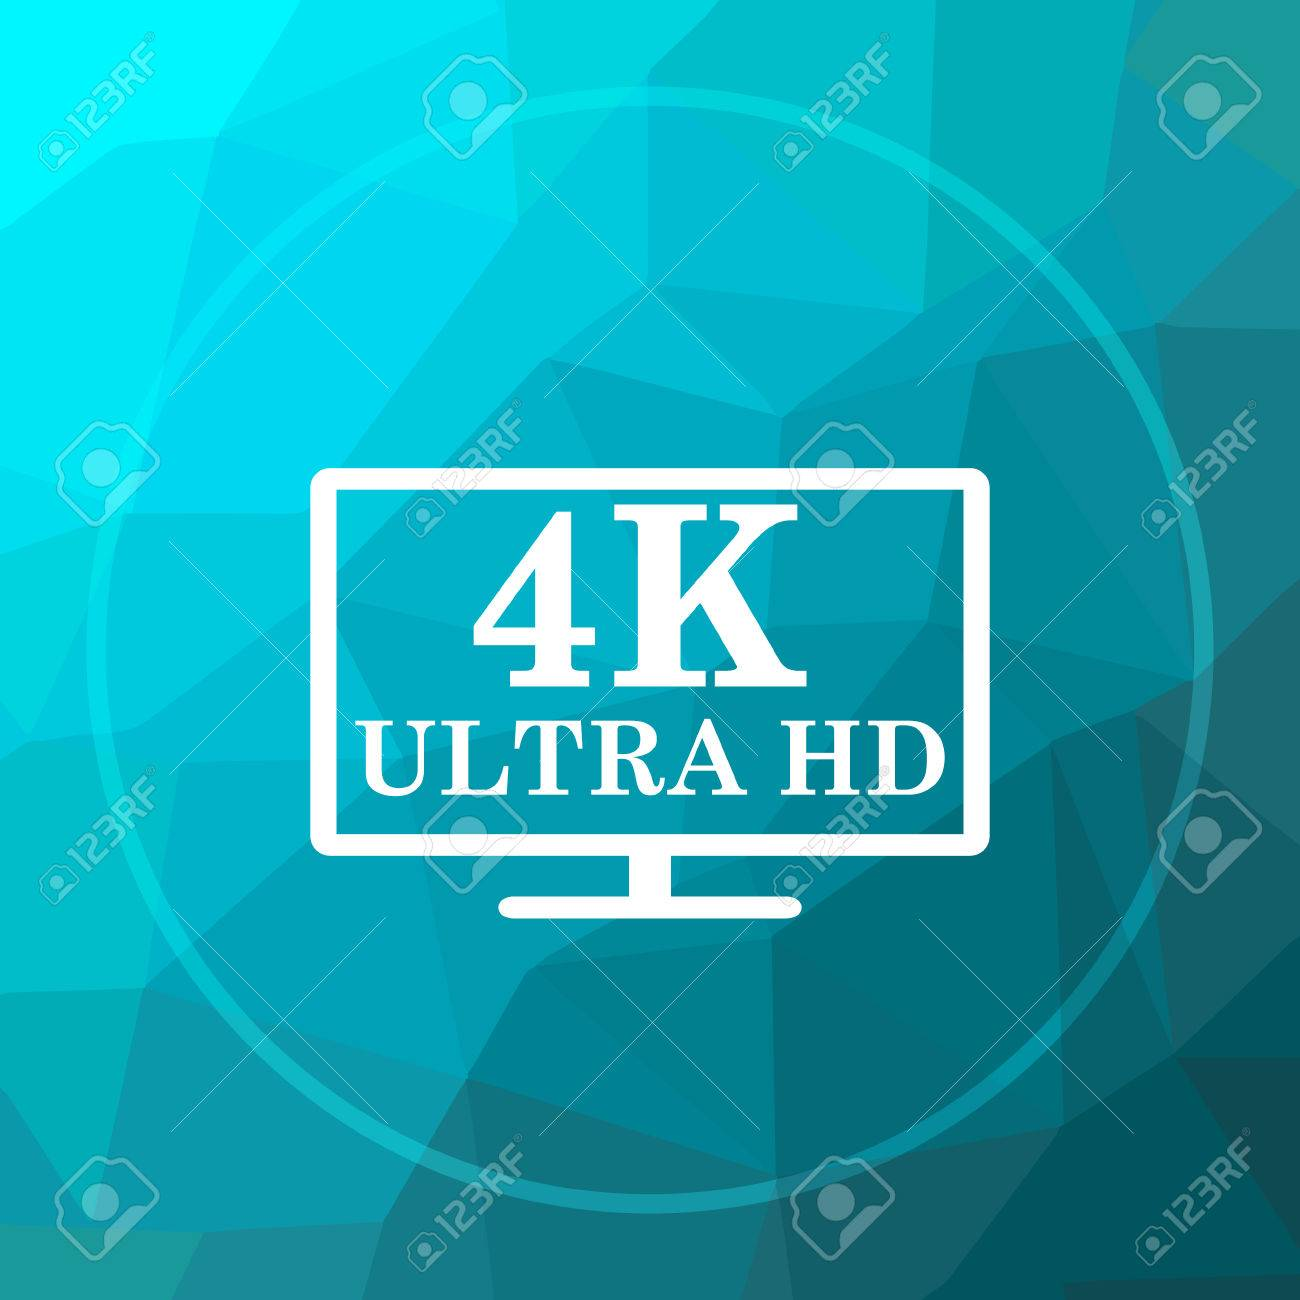 4k Ultra Hd Icon 4k Ultra Hd Website Button On Blue Low Poly